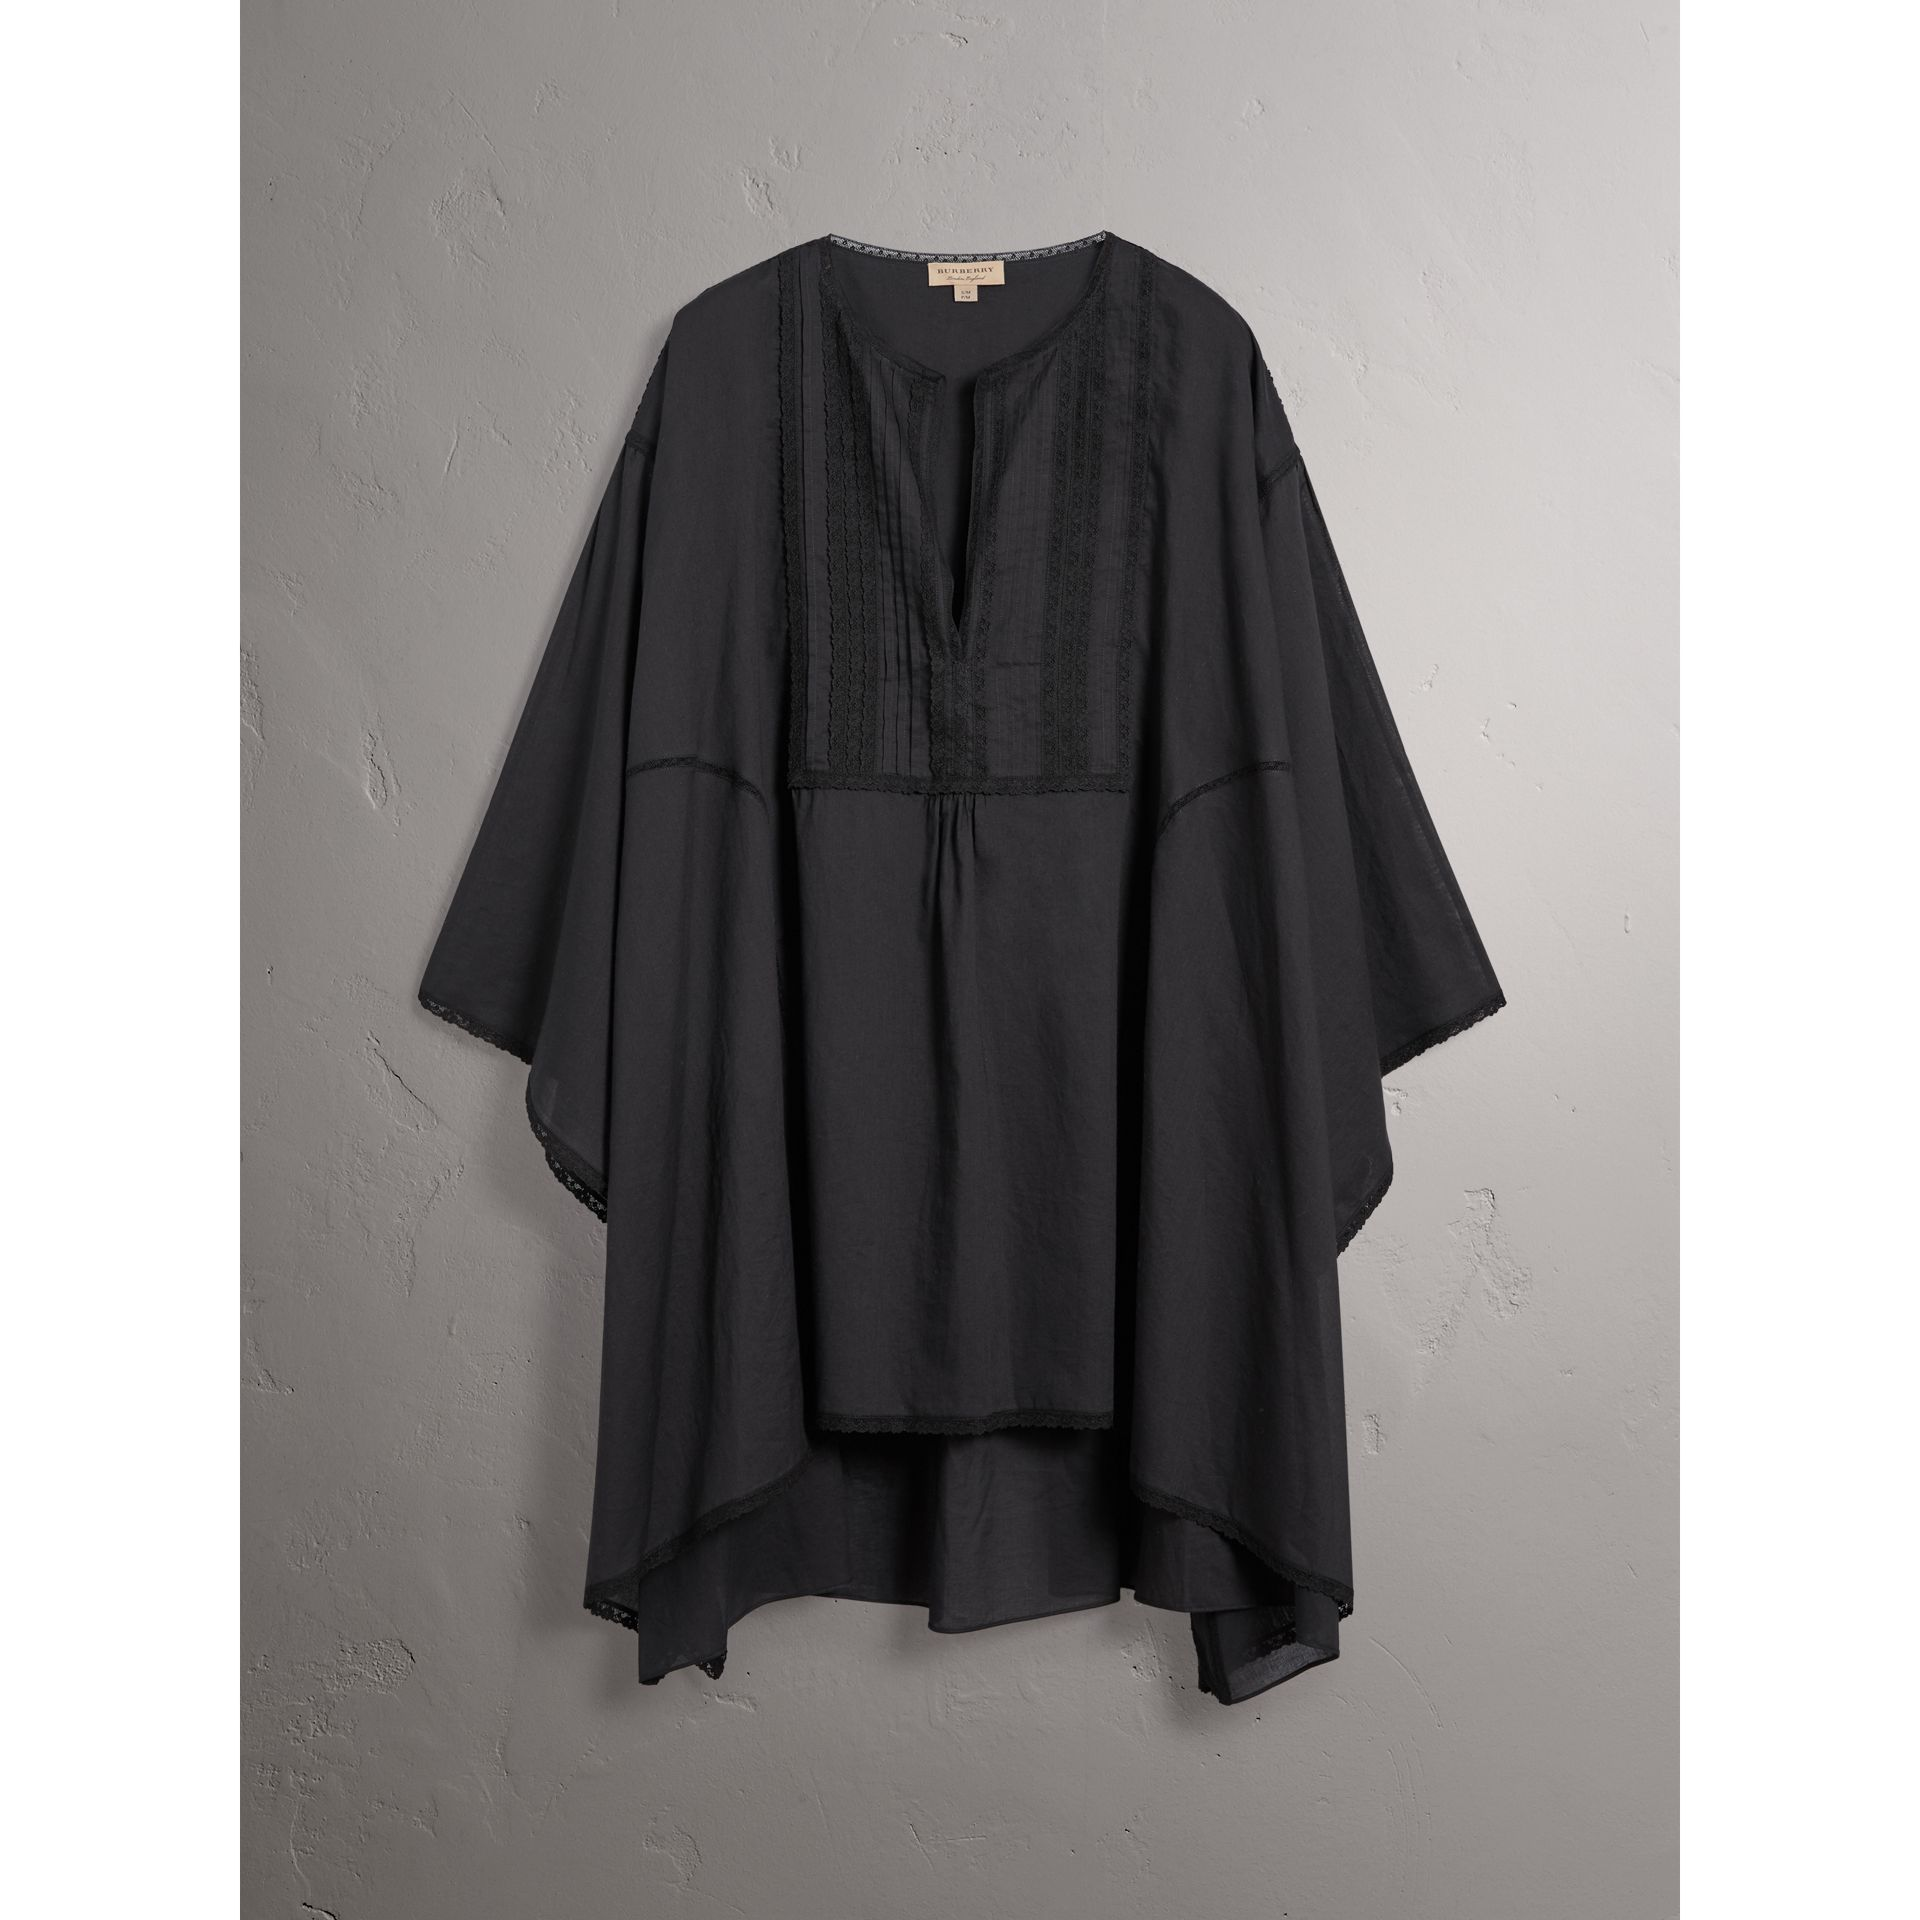 Lace Detail Cotton Kaftan in Black - Women | Burberry - gallery image 1